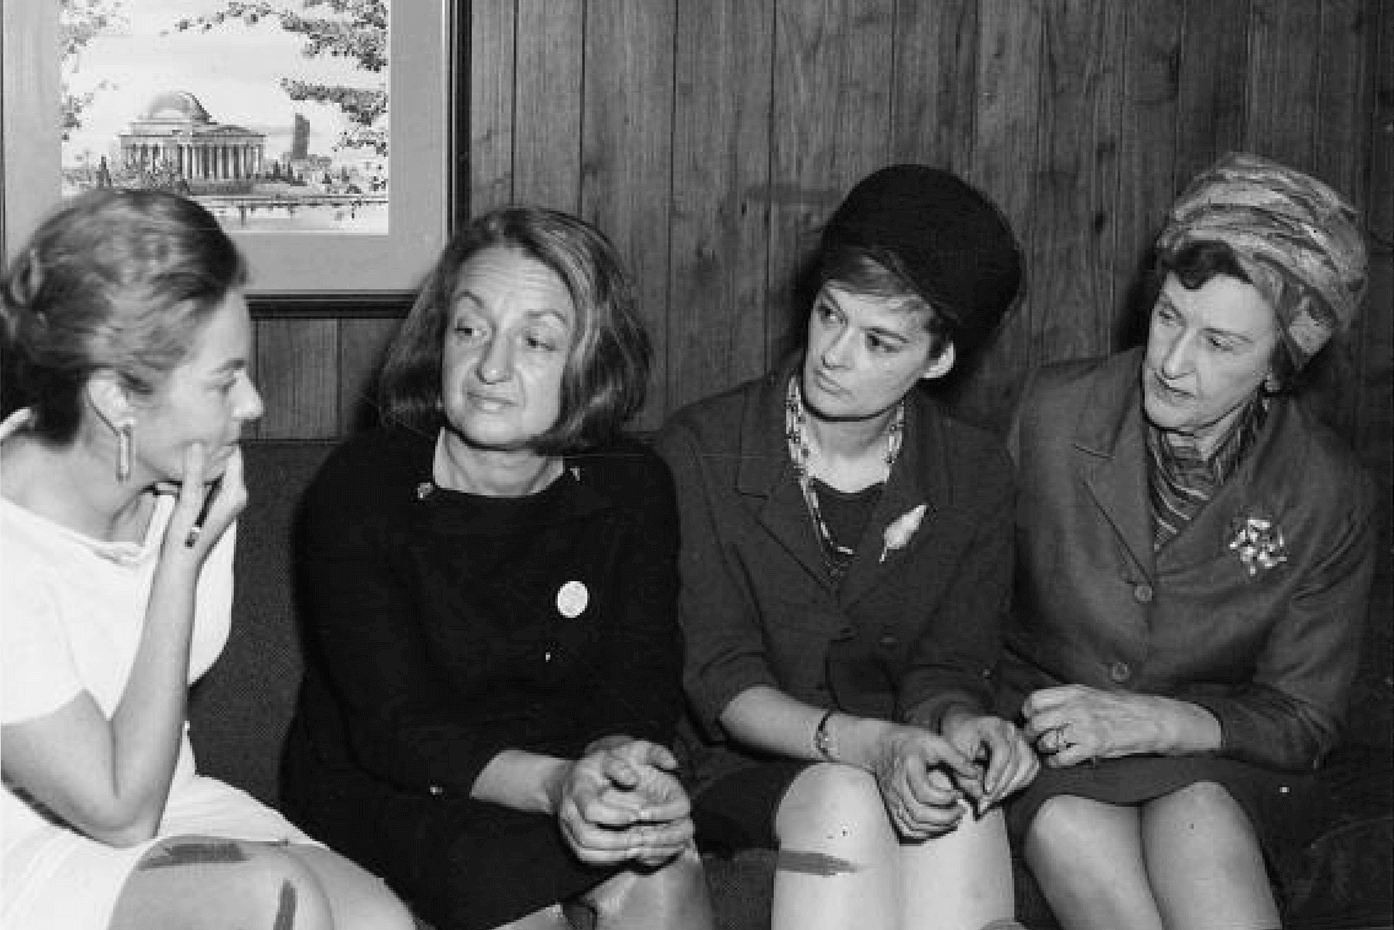 National Organization for Women (NOW) leaders meet in 1968.